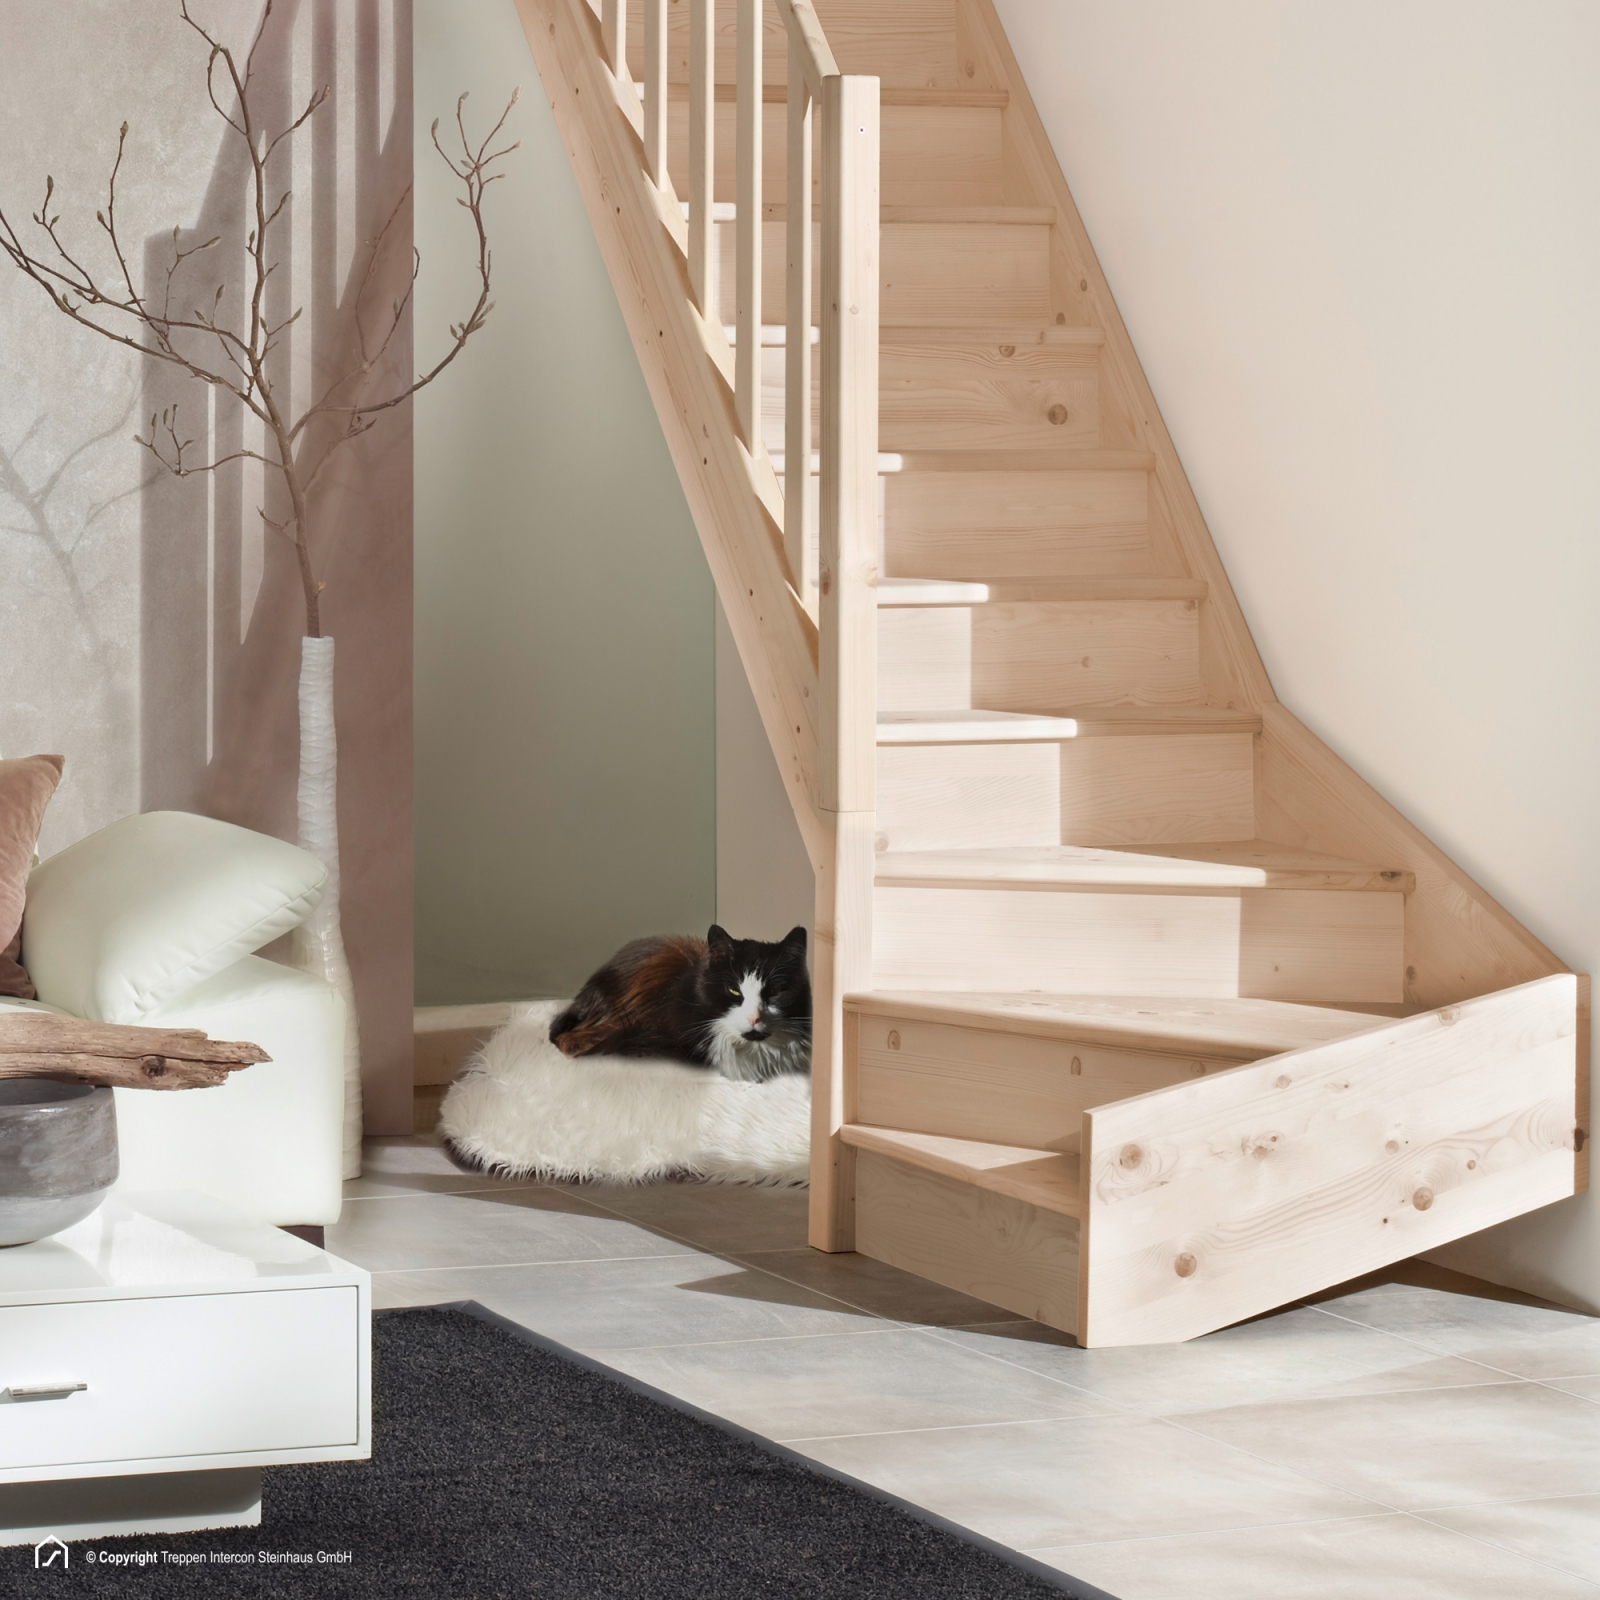 massivholztreppen 1 4 gewendelt aus buche treppen intercon. Black Bedroom Furniture Sets. Home Design Ideas